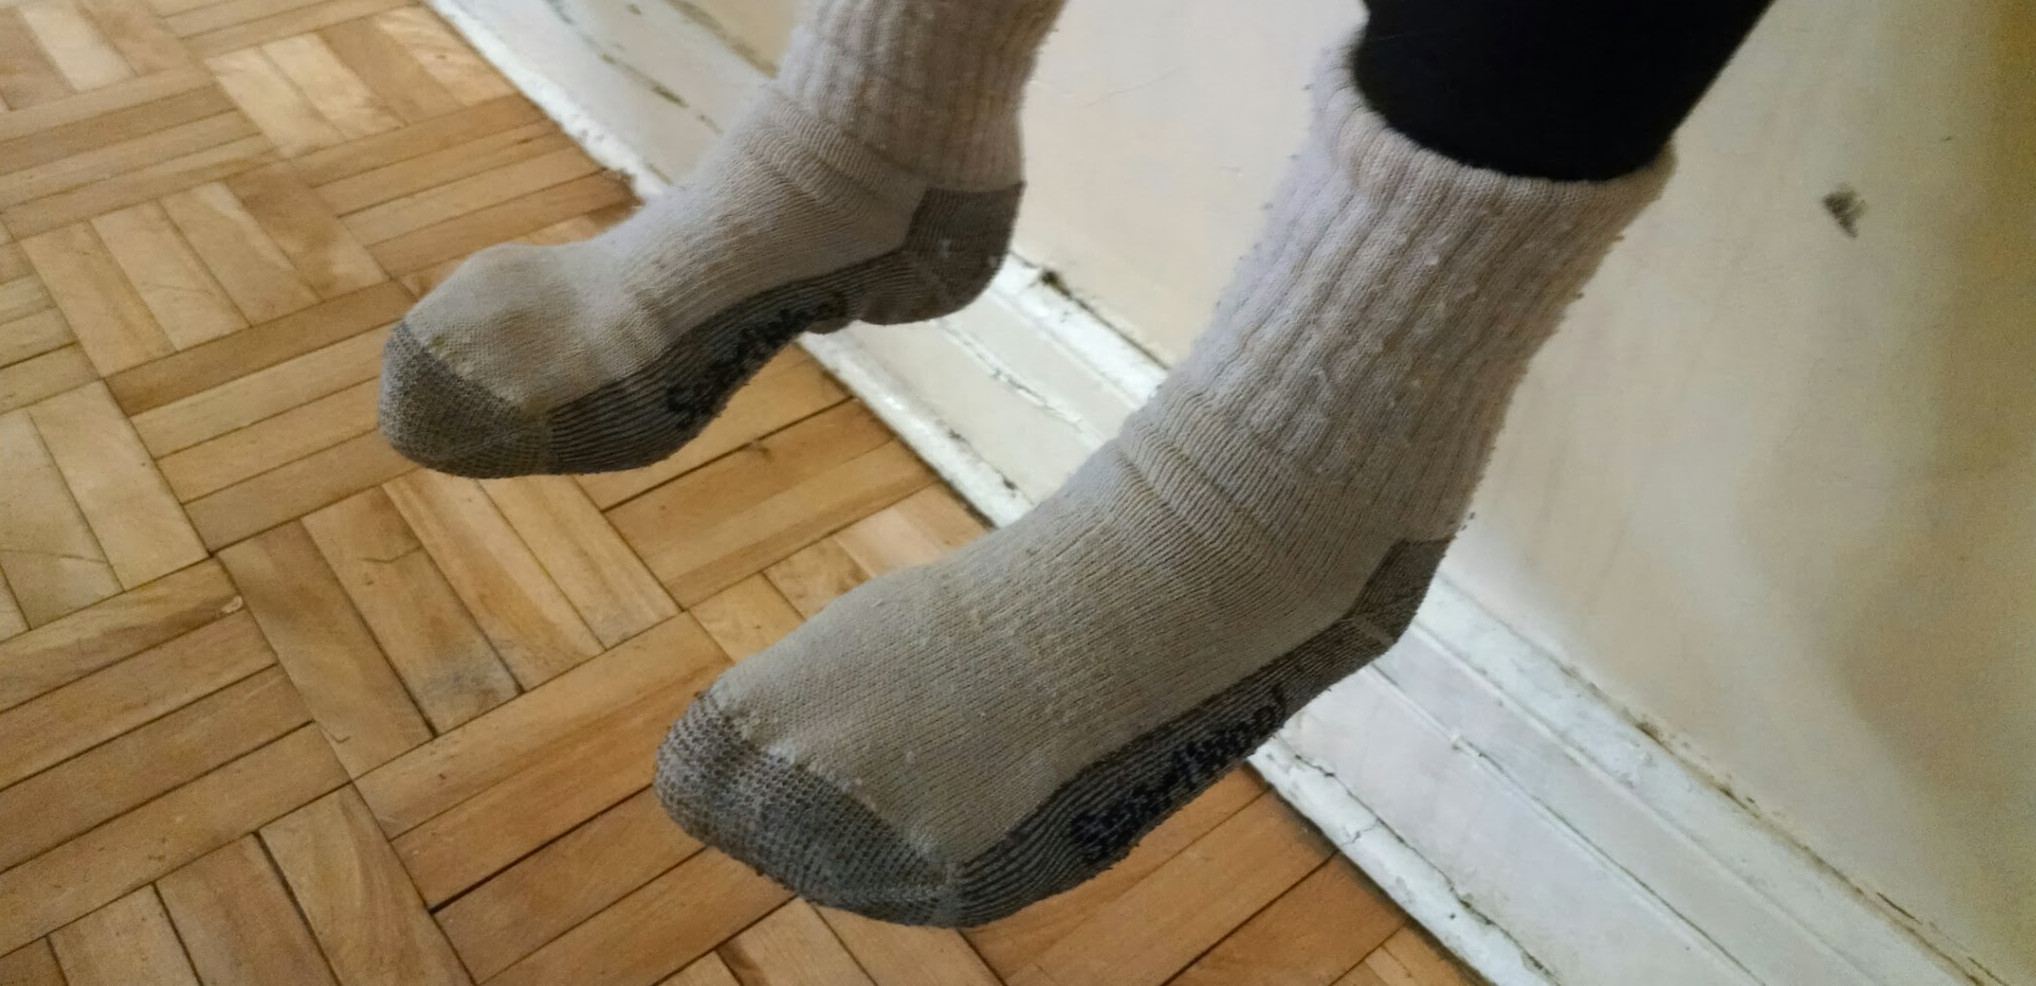 Girls Wearing Shoes without Socks